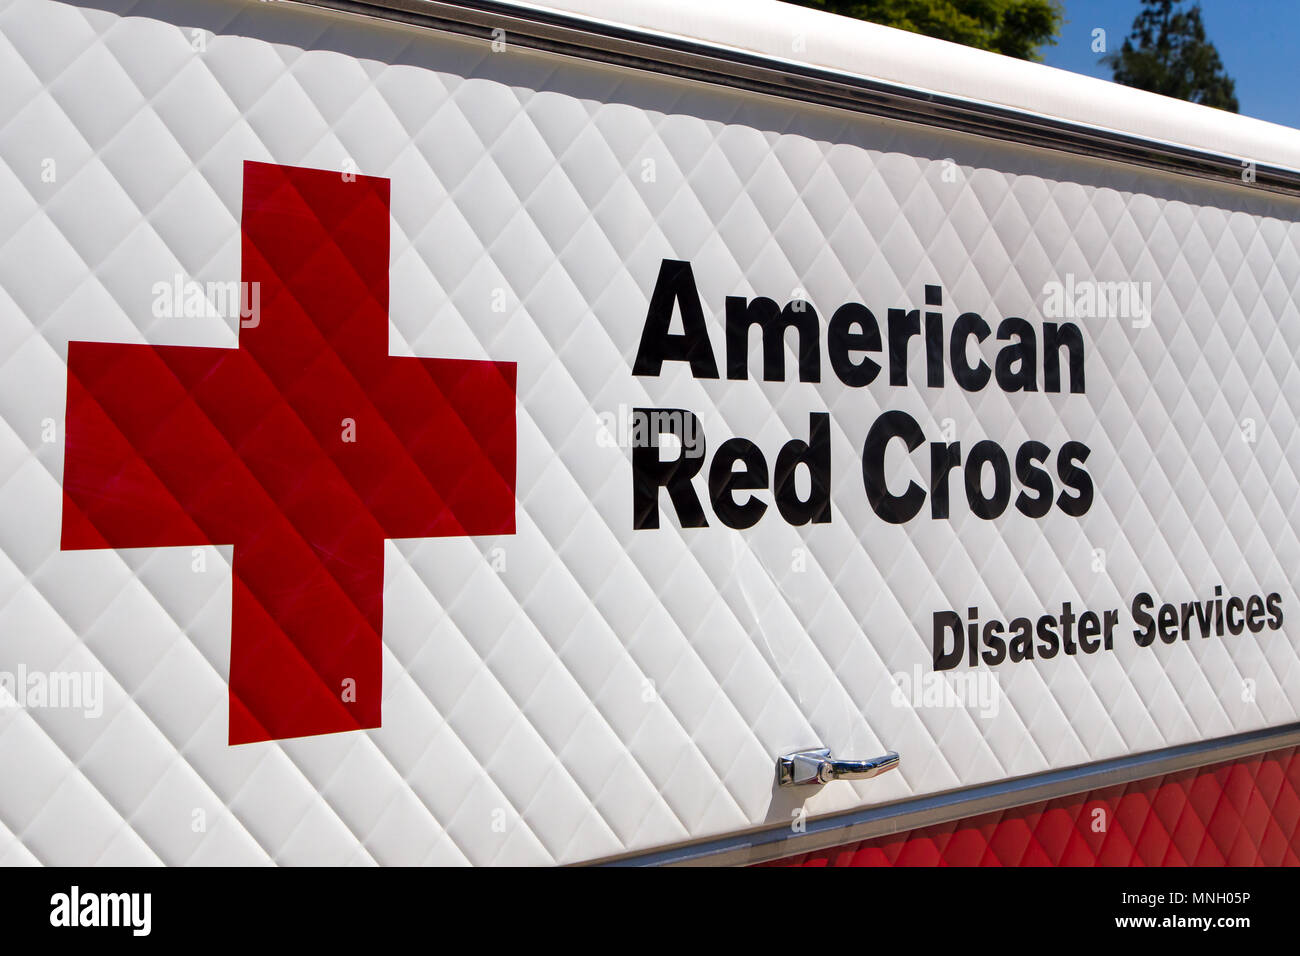 ARCADIA, CA/USA - APRIL 16, 2016: American Red Cross Disaster Services vehicle and logo. - Stock Image